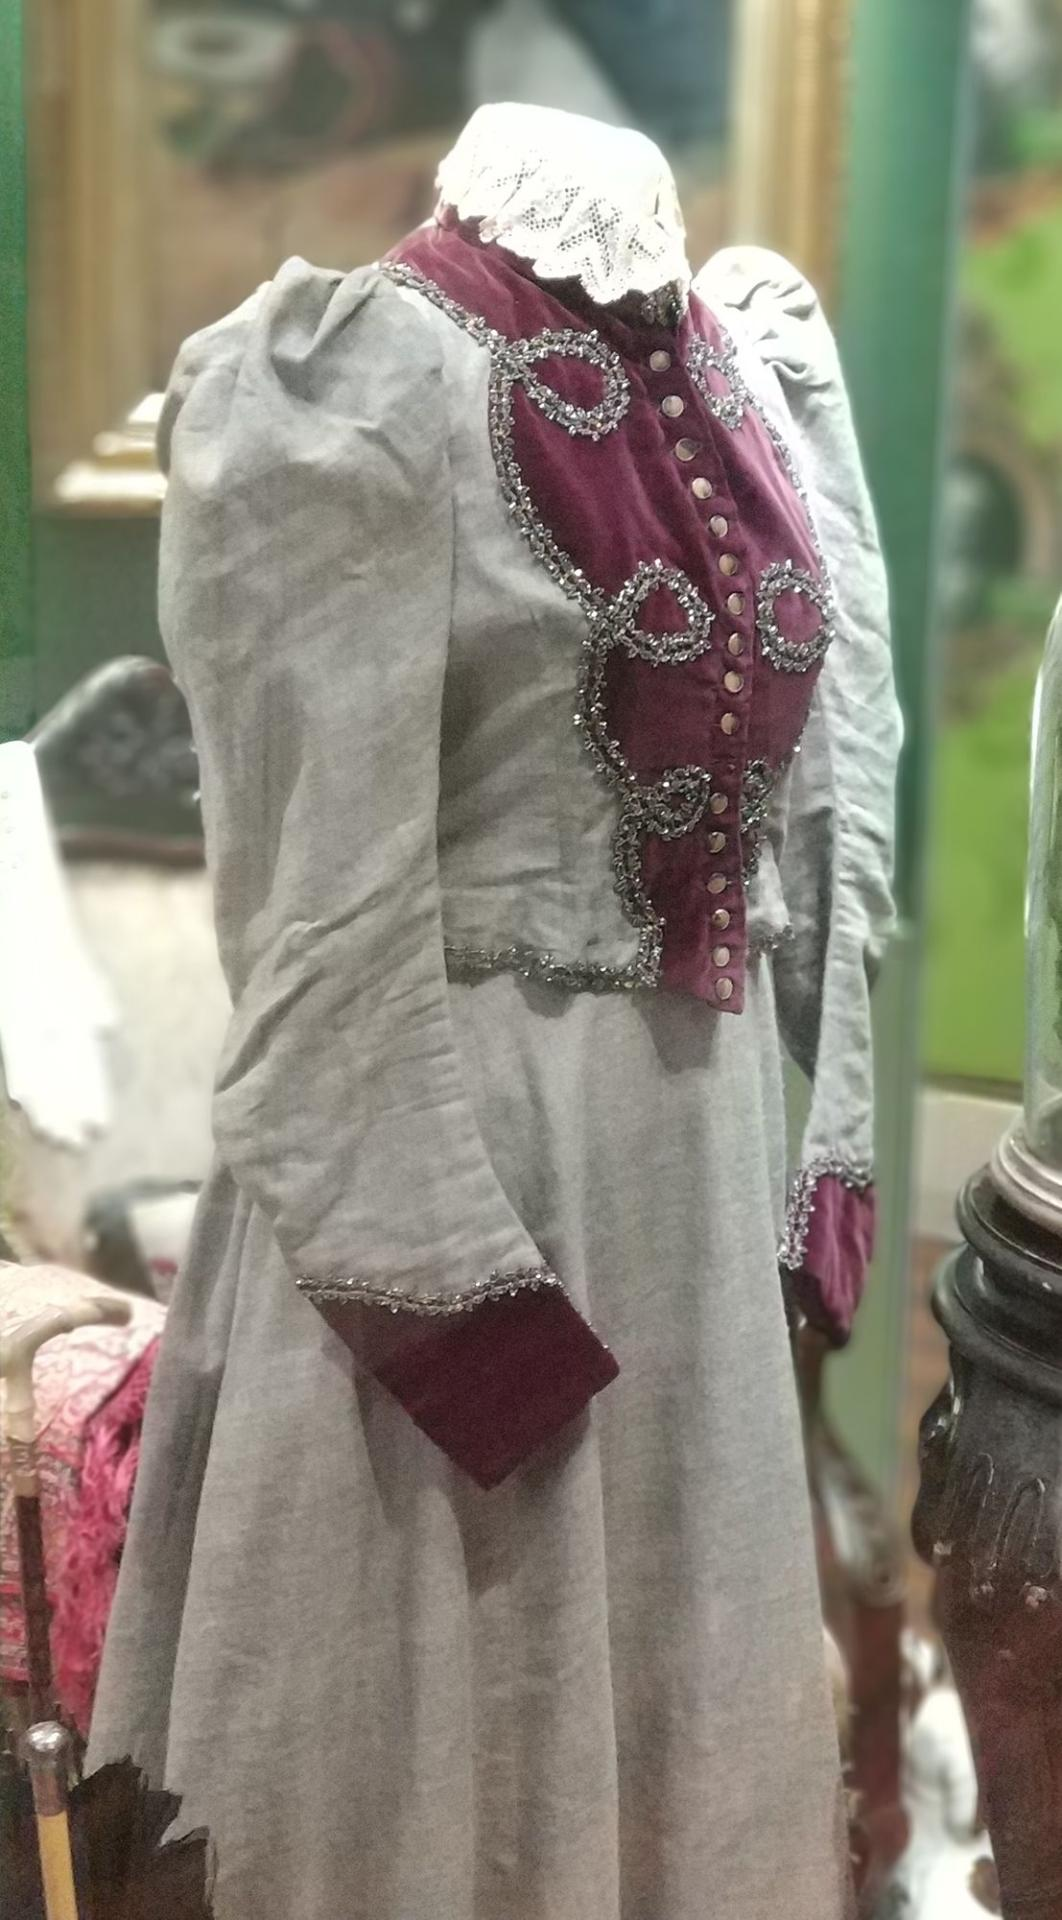 1890s Victorian jacket and skirt